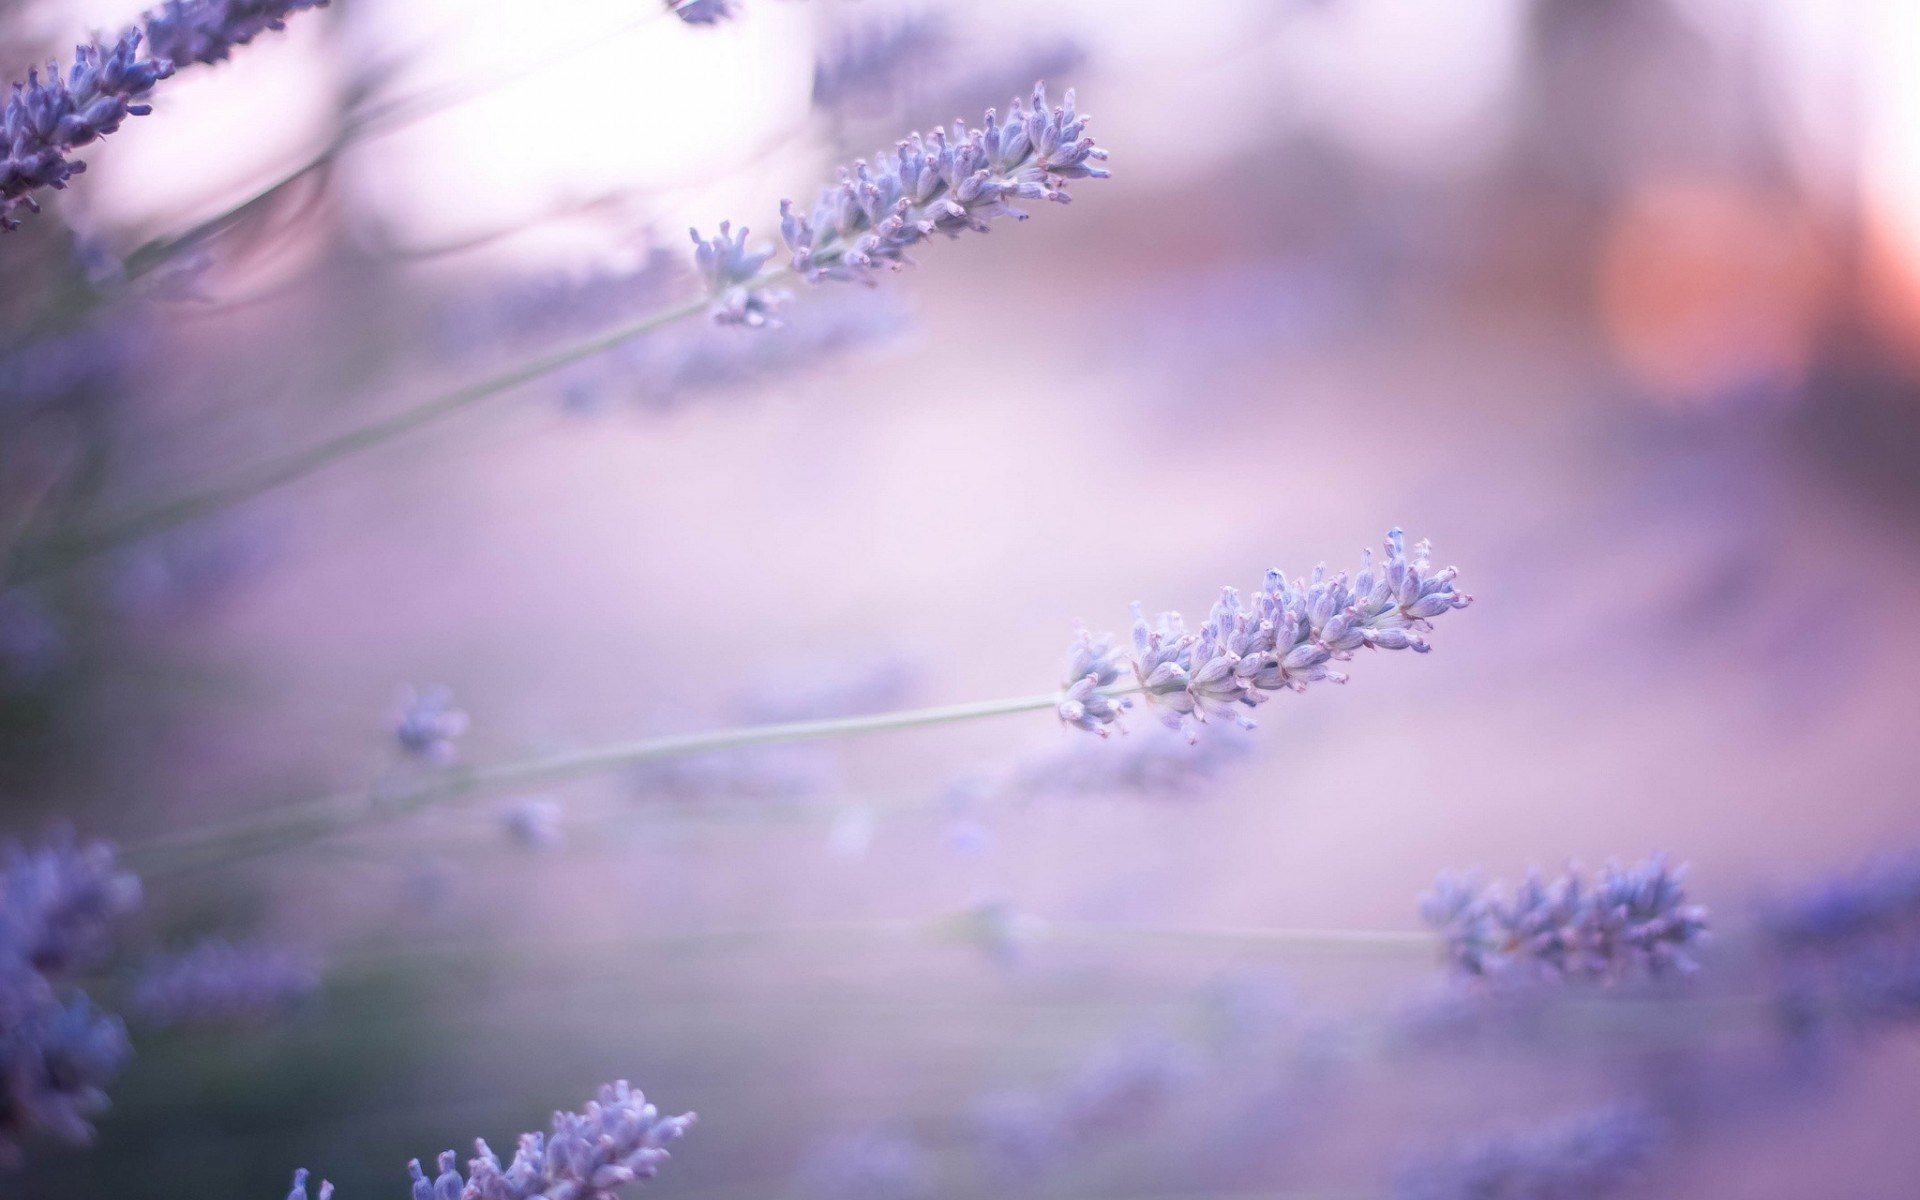 lavender wallpaper hd - HD Desktop Wallpapers | 4k HD